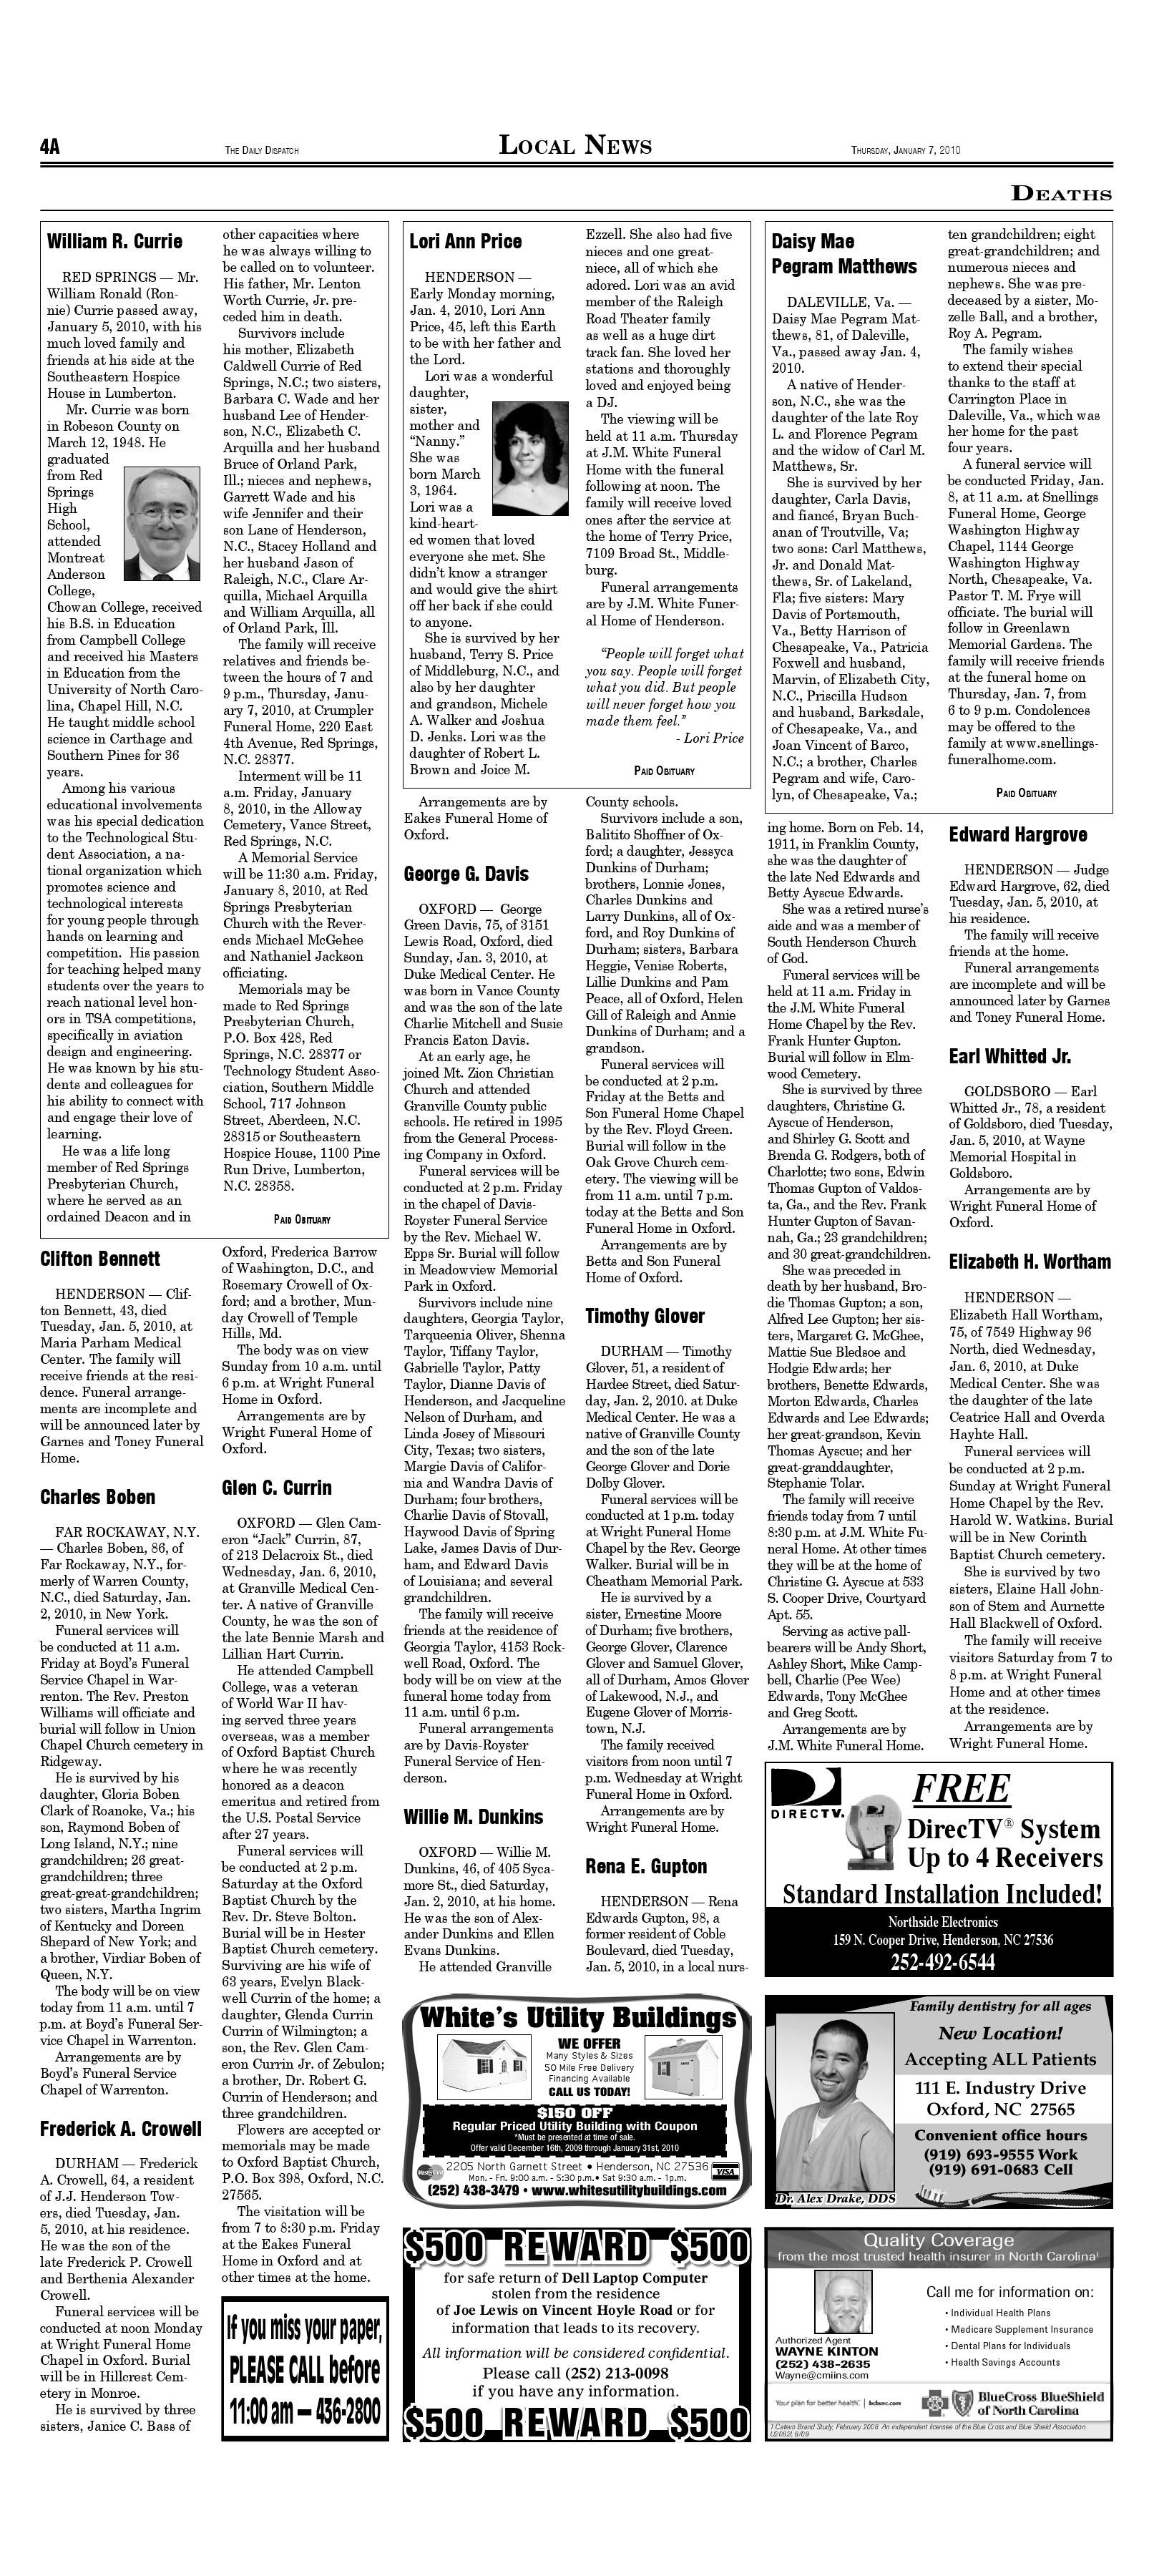 The Daily Dispatch - Thursday, January 7, 2010